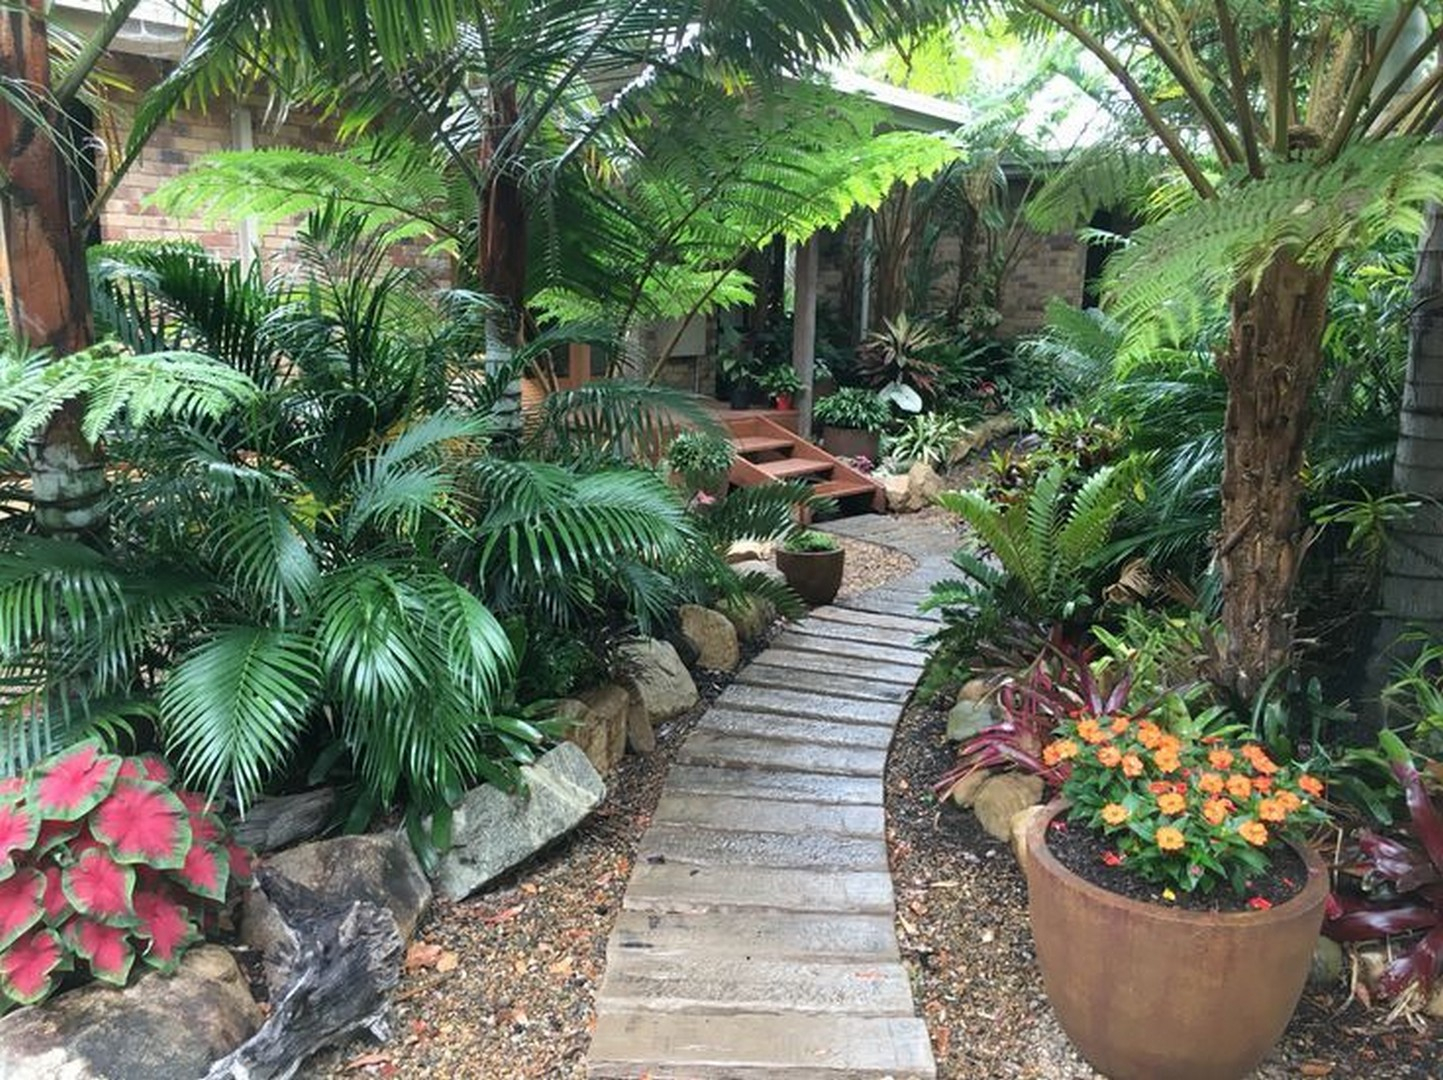 41 Tropical Landscape Design Ideas Wonderfulbackyard for 13 Smart Concepts of How to Improve Tropical Landscaping Ideas For Backyard